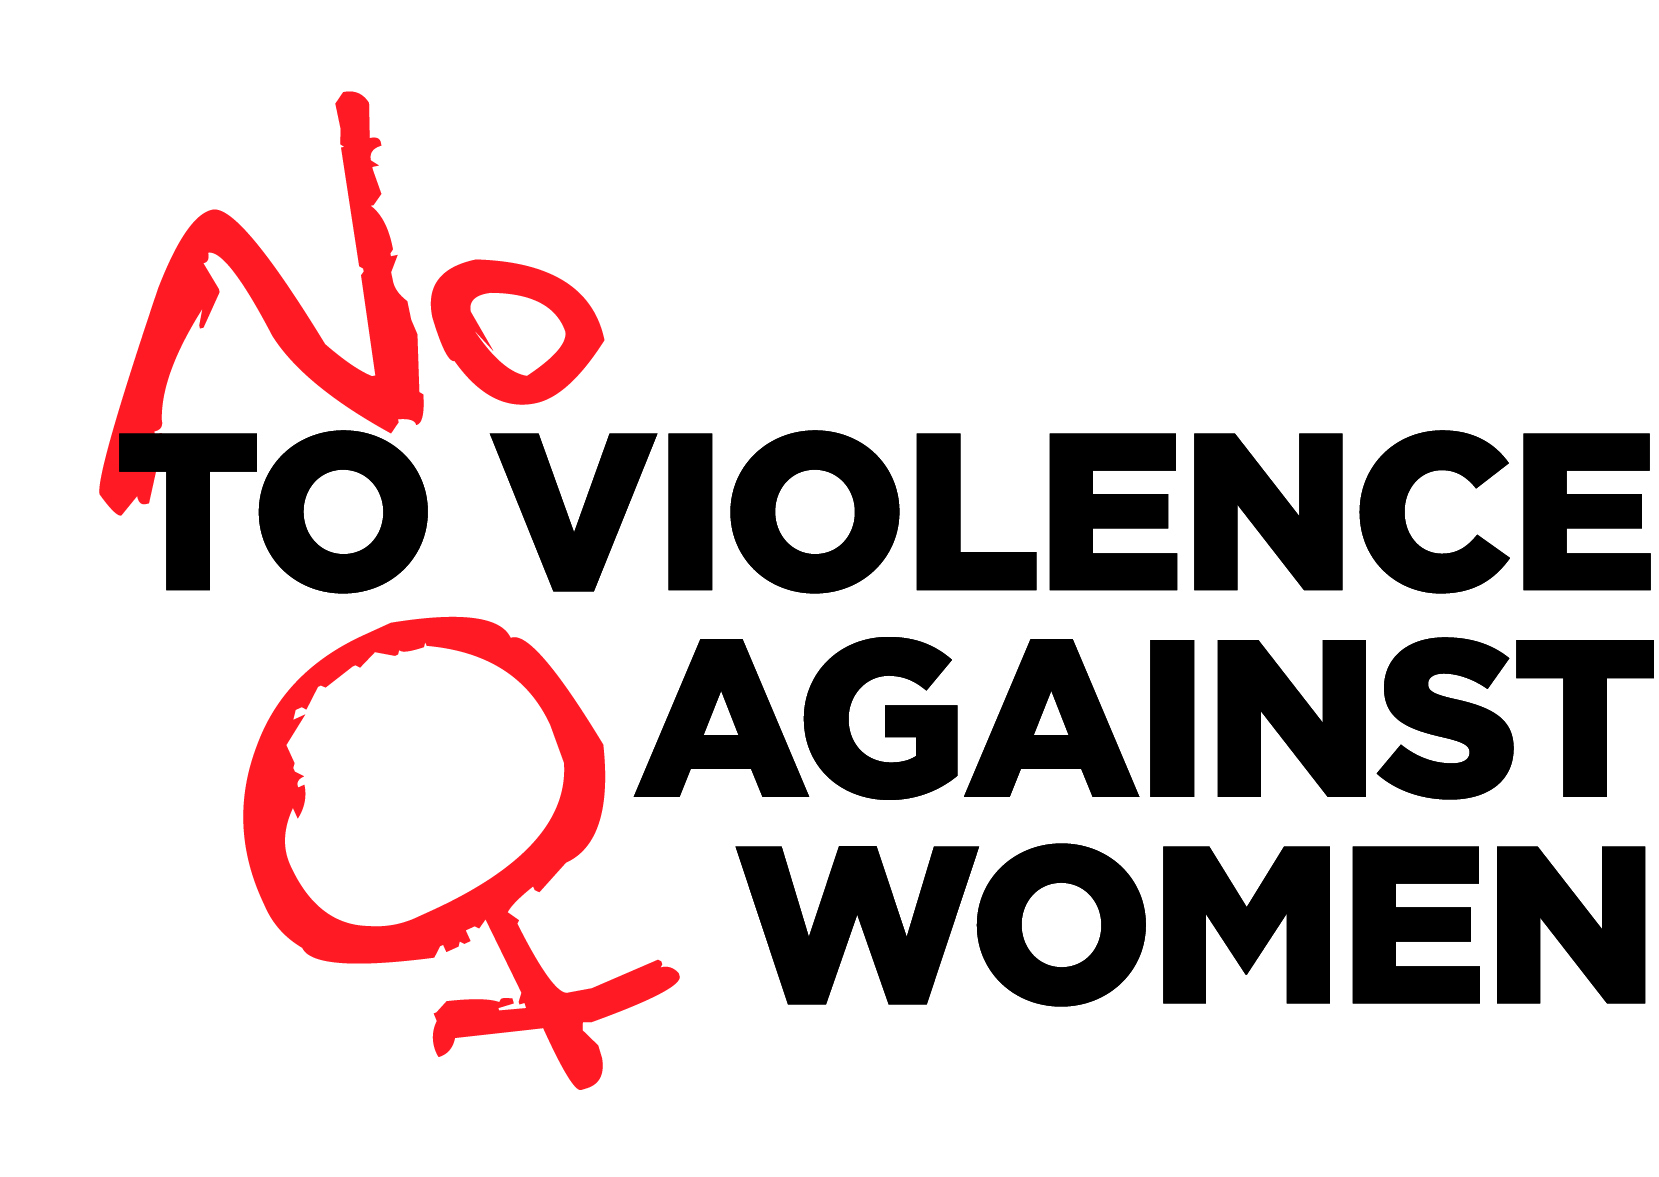 violence on women in north america essay Introduction violence against , the rape in america study estimates that 683,000 women it includes all the ways our society objectifies and oppresses women.